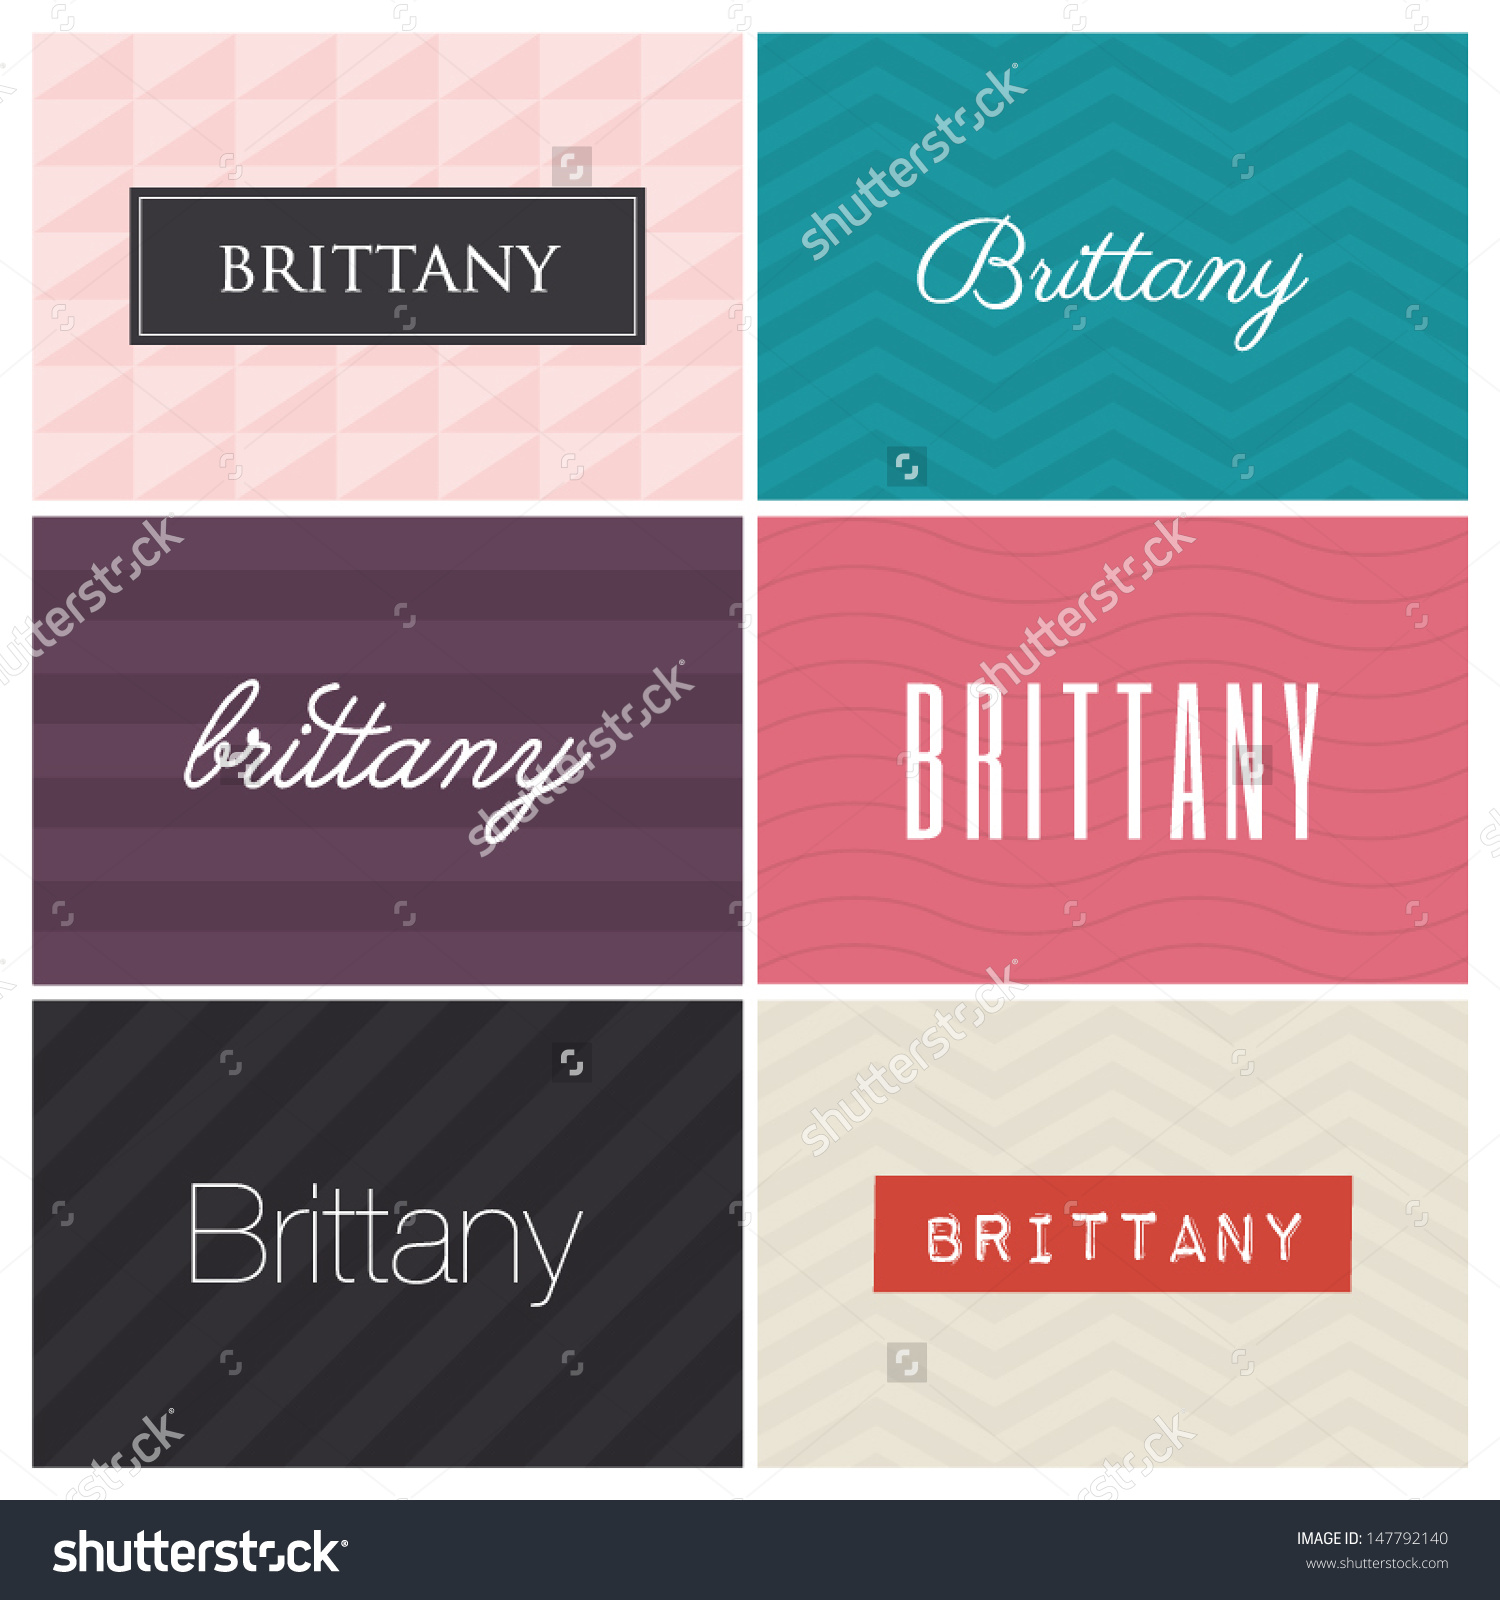 Brittany Name , Graphic Design Elements Stock Vector Illustration.